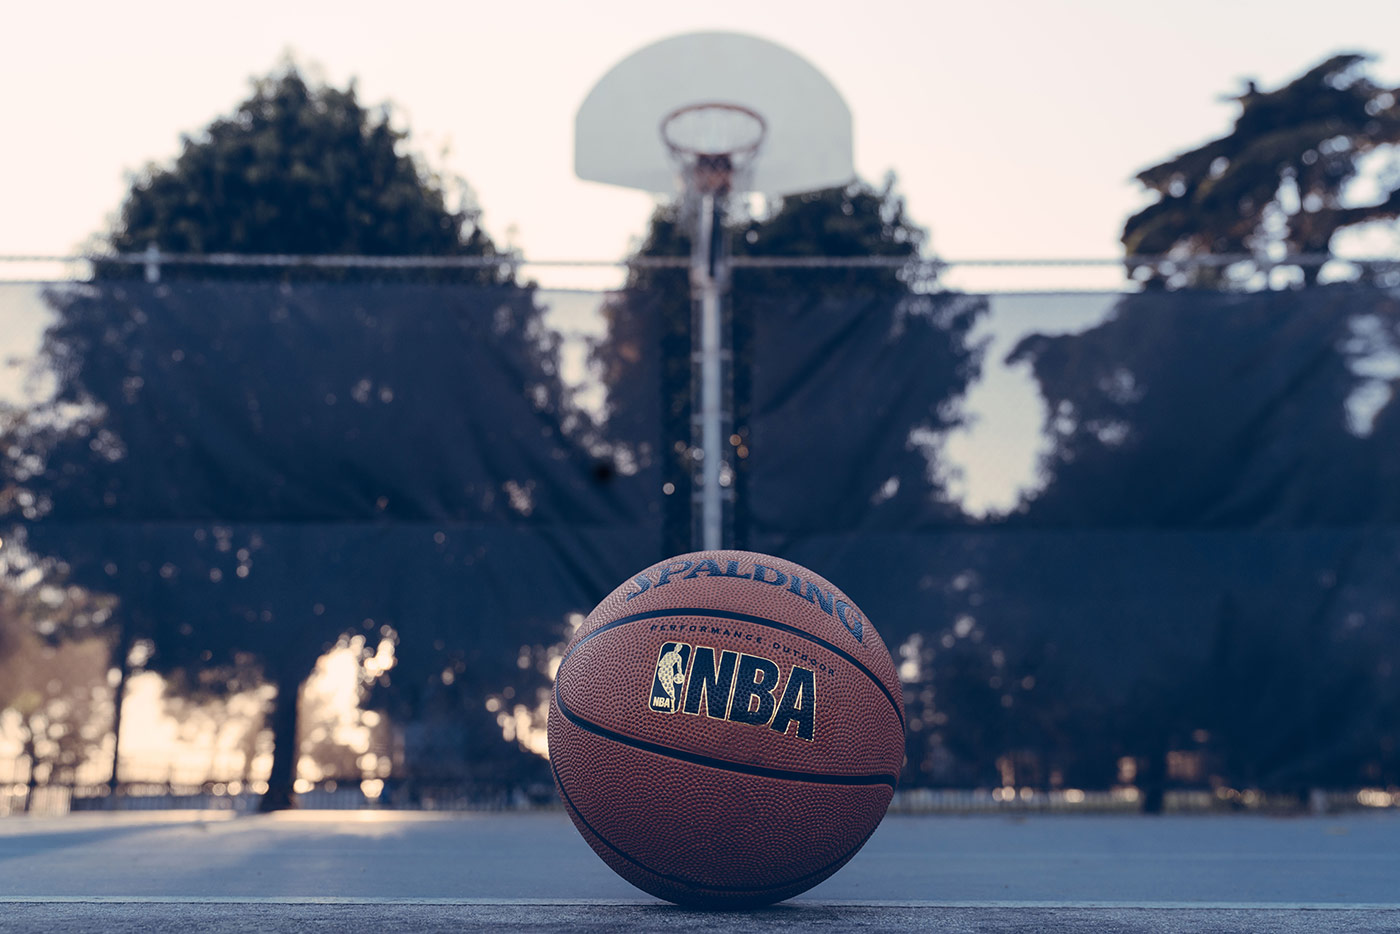 NBA logo on basketball